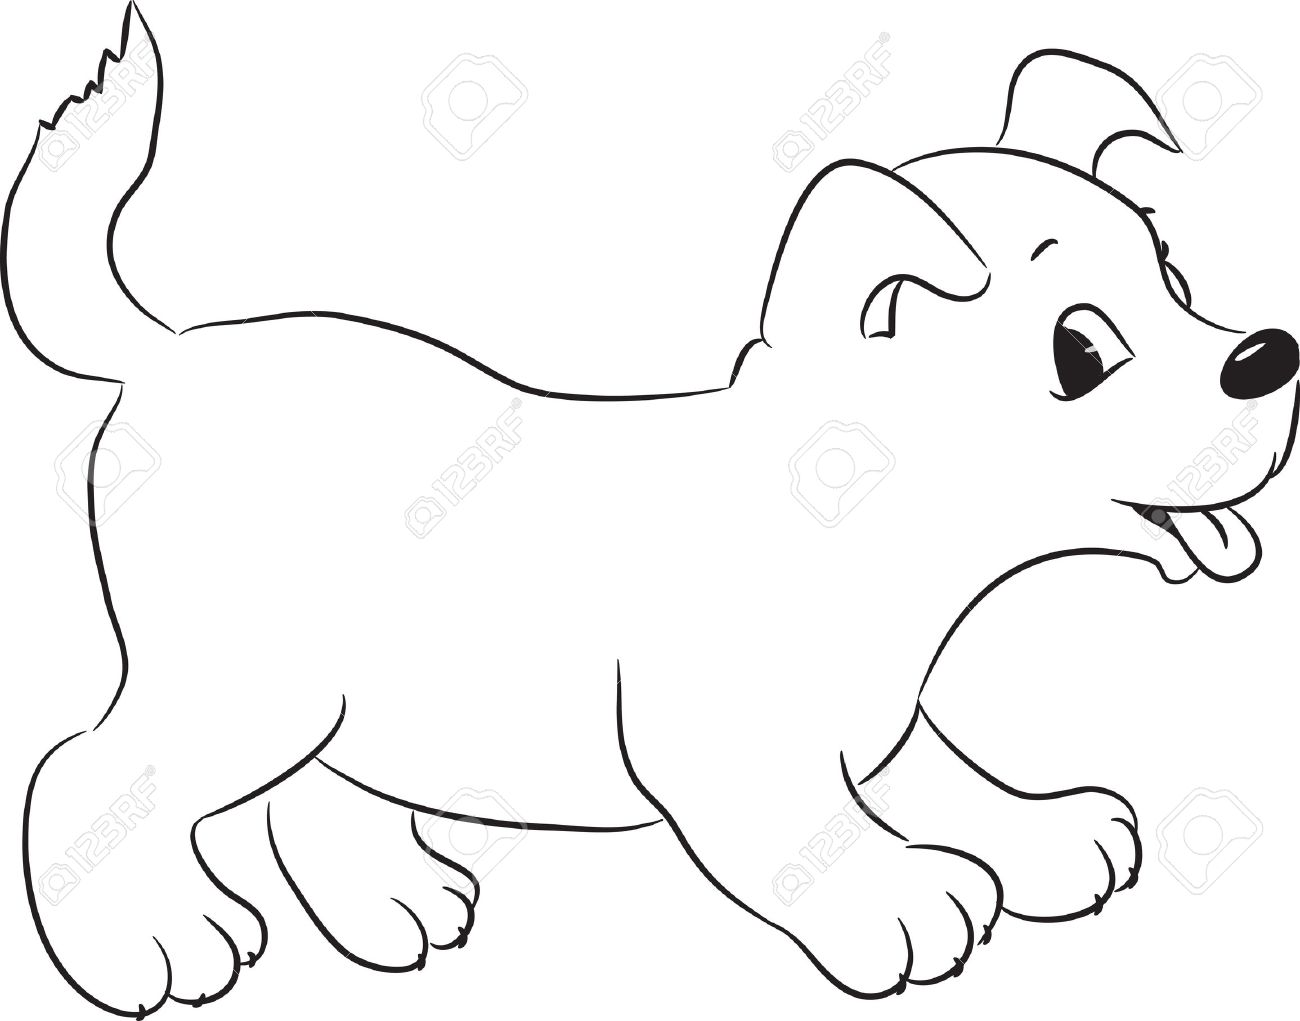 15399142-Outlined-cute-cartoon-dog-Vector-illustration--Stock-Vector-white